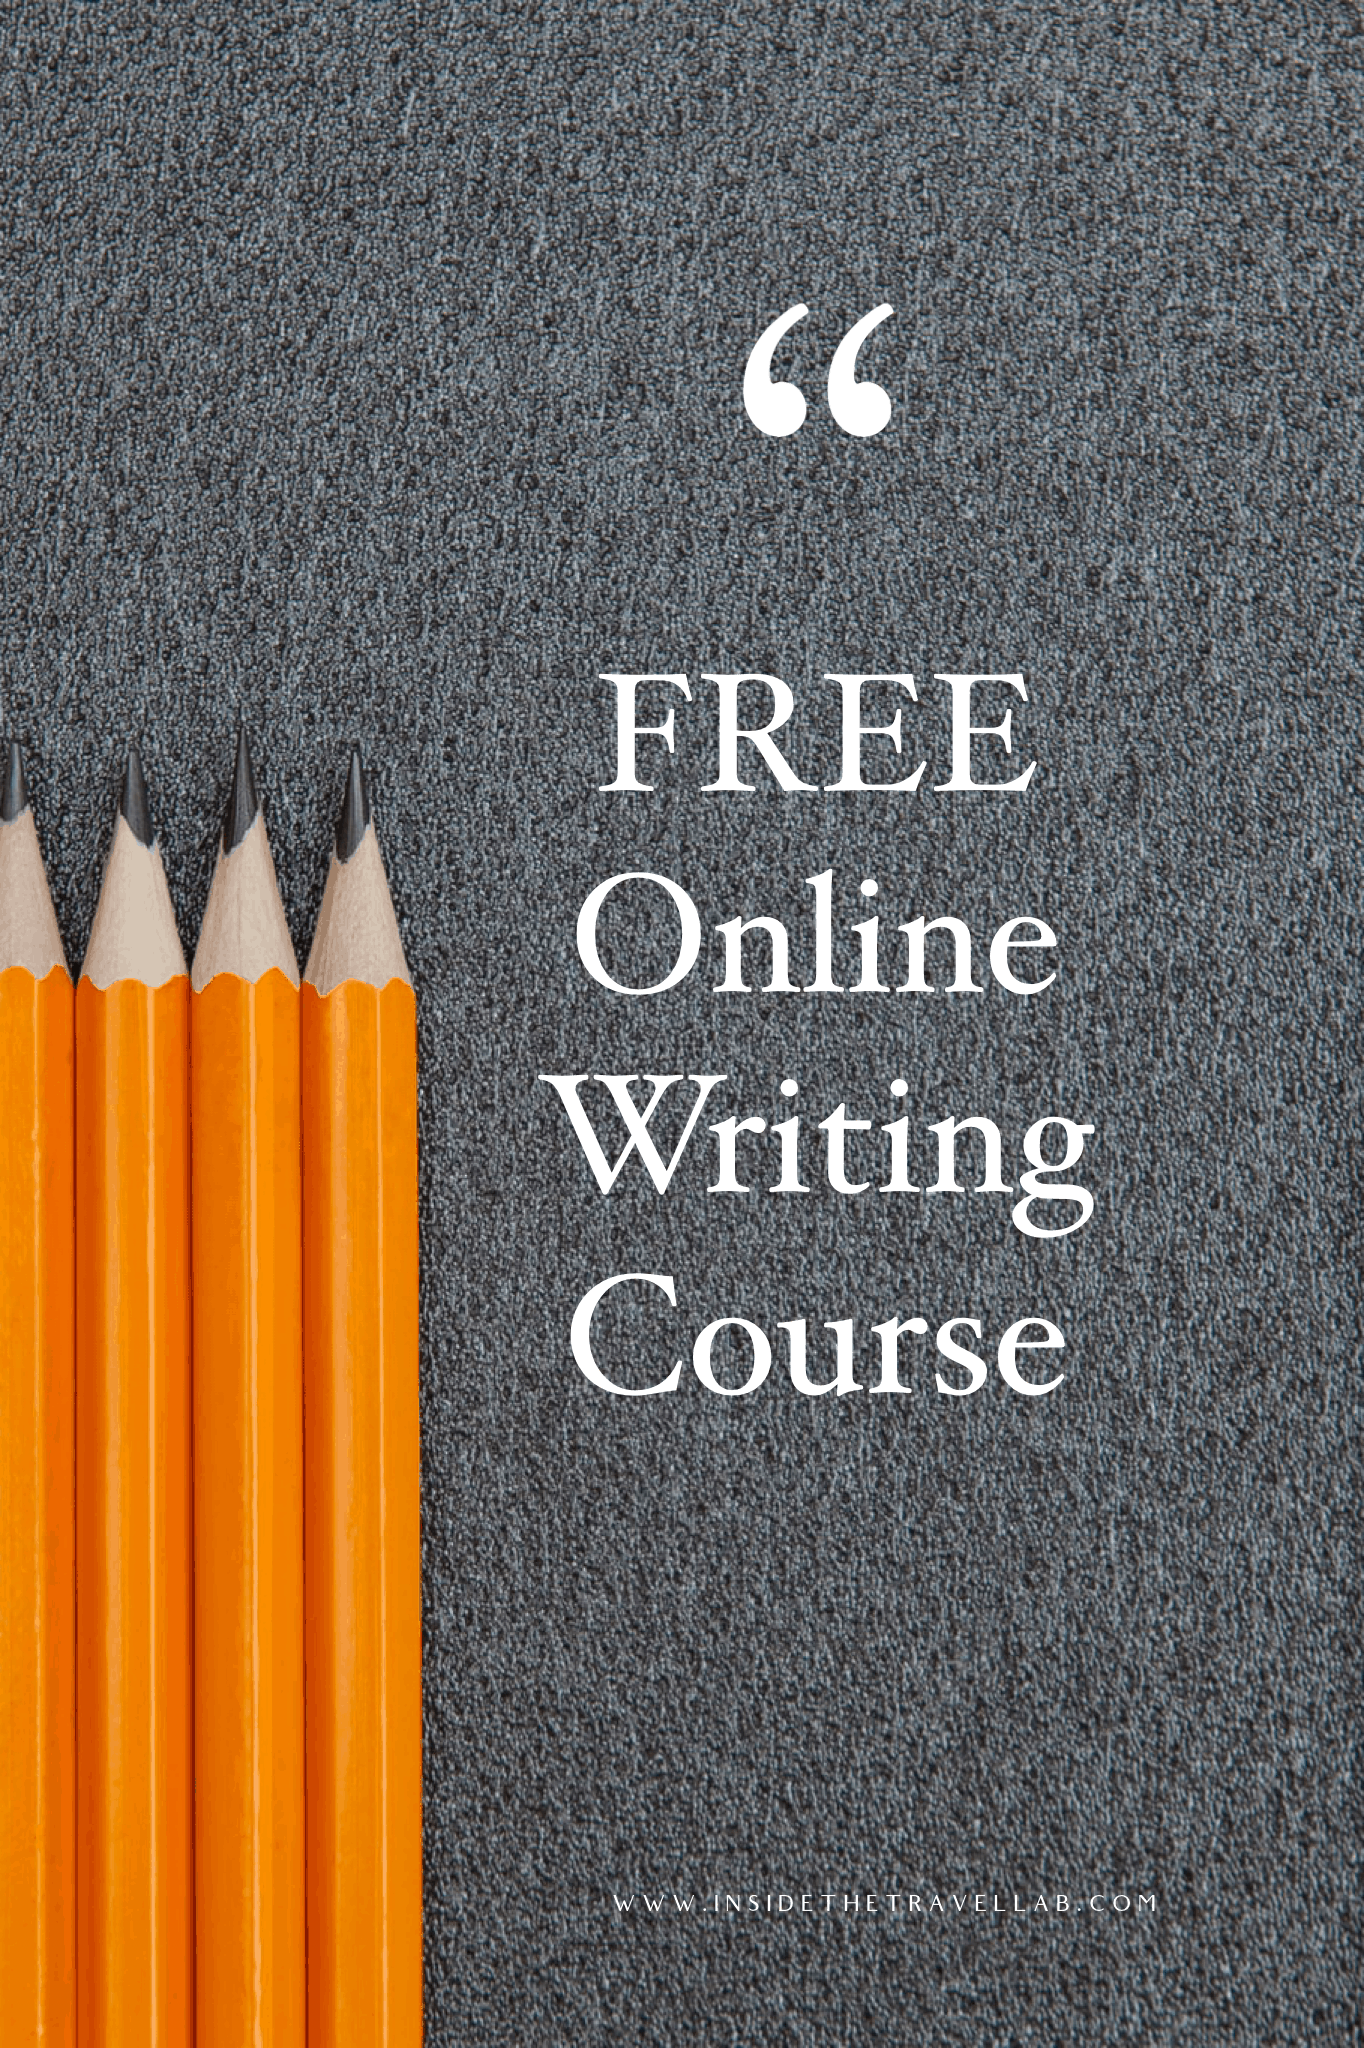 Free Online Writing Course Cover Image